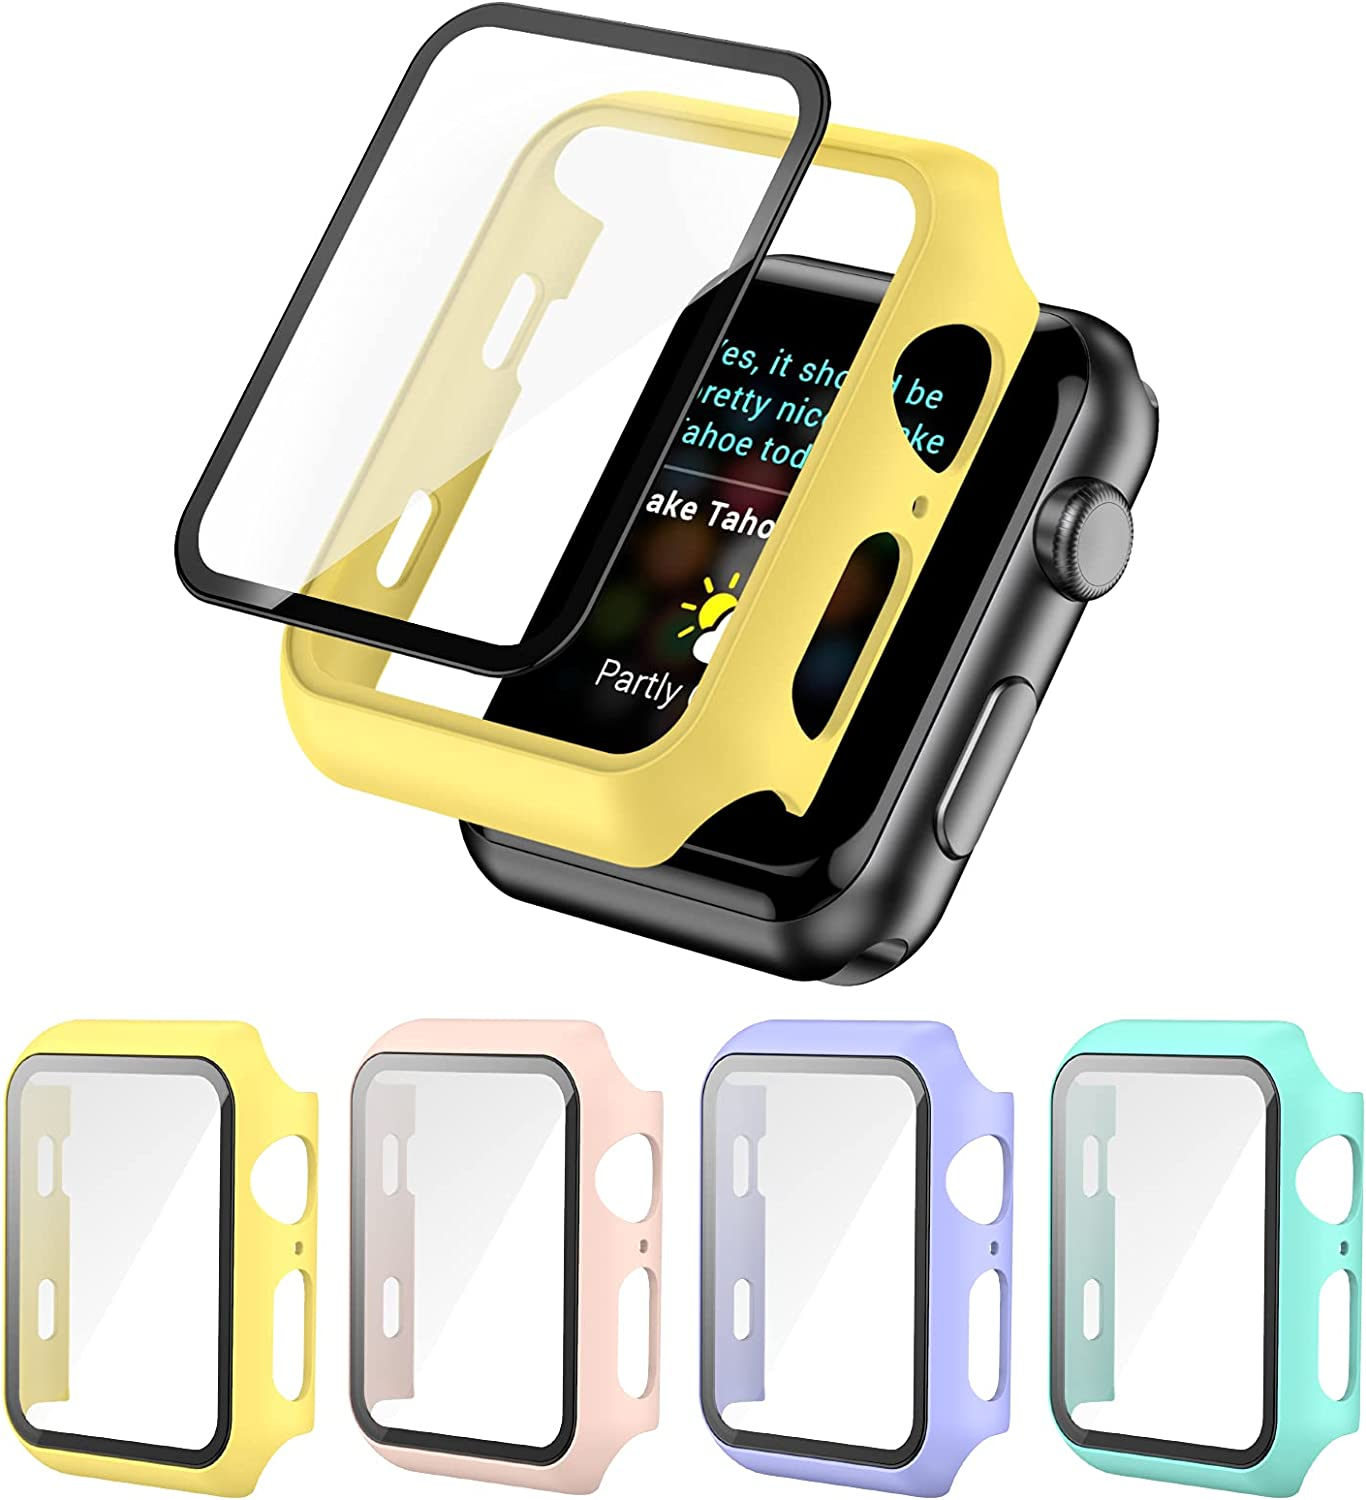 [4 Pack] Screen Protector Case Compatible with Apple Watch 38mm Series 3/2/1, Full Hard PC Ultra-Thin Scratch Resistant Bumper HD Protective Watch Cover for Women Men iWatch Accessories PLWENST